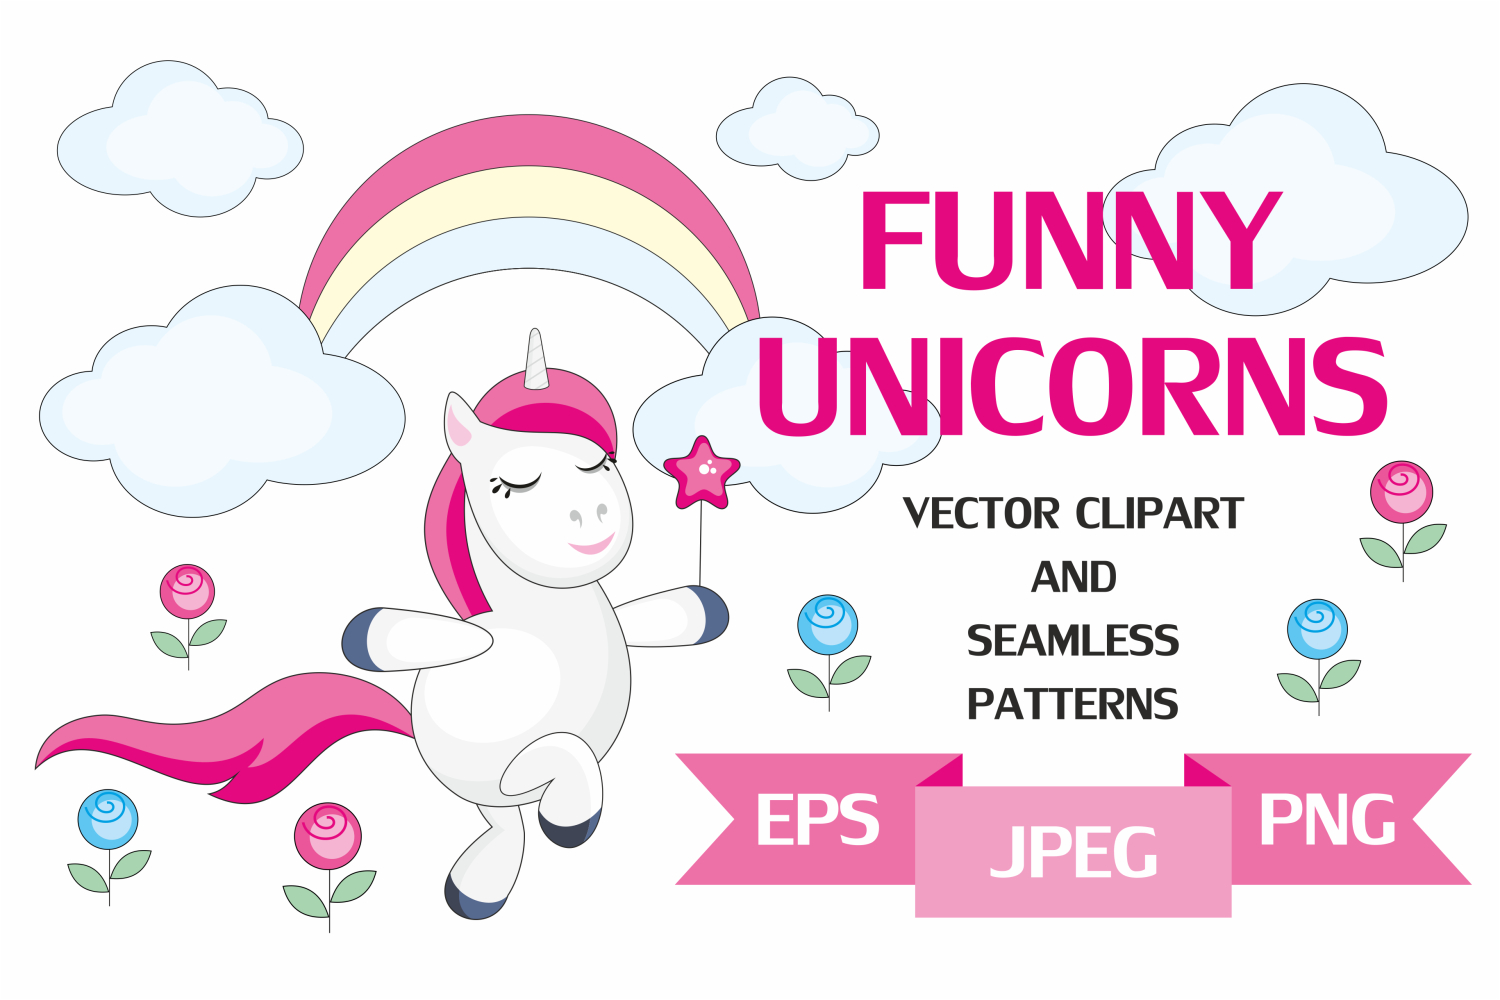 Funny unicorns. Vector clipart and seamless patterns. example image 1